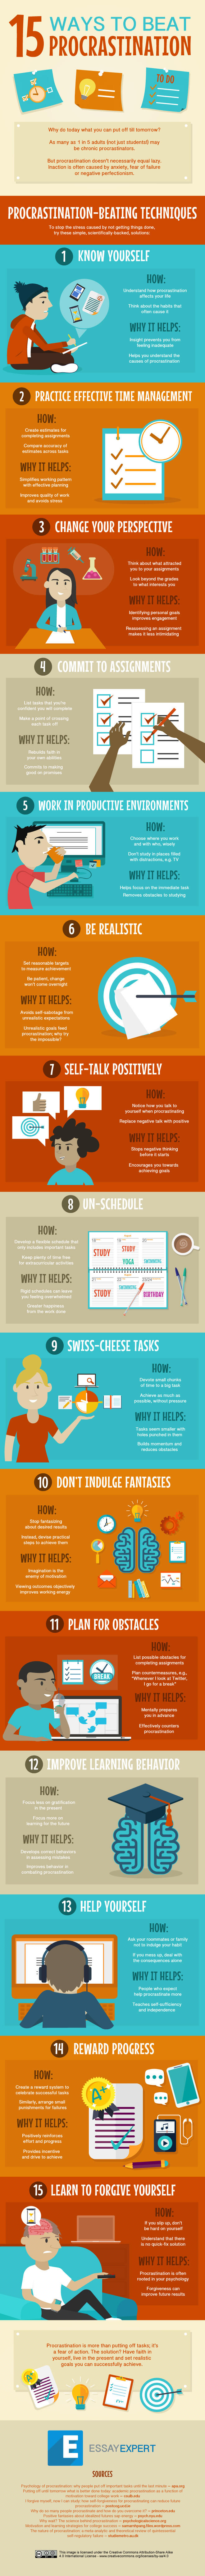 Infographic: 15 ways to beat procrastination